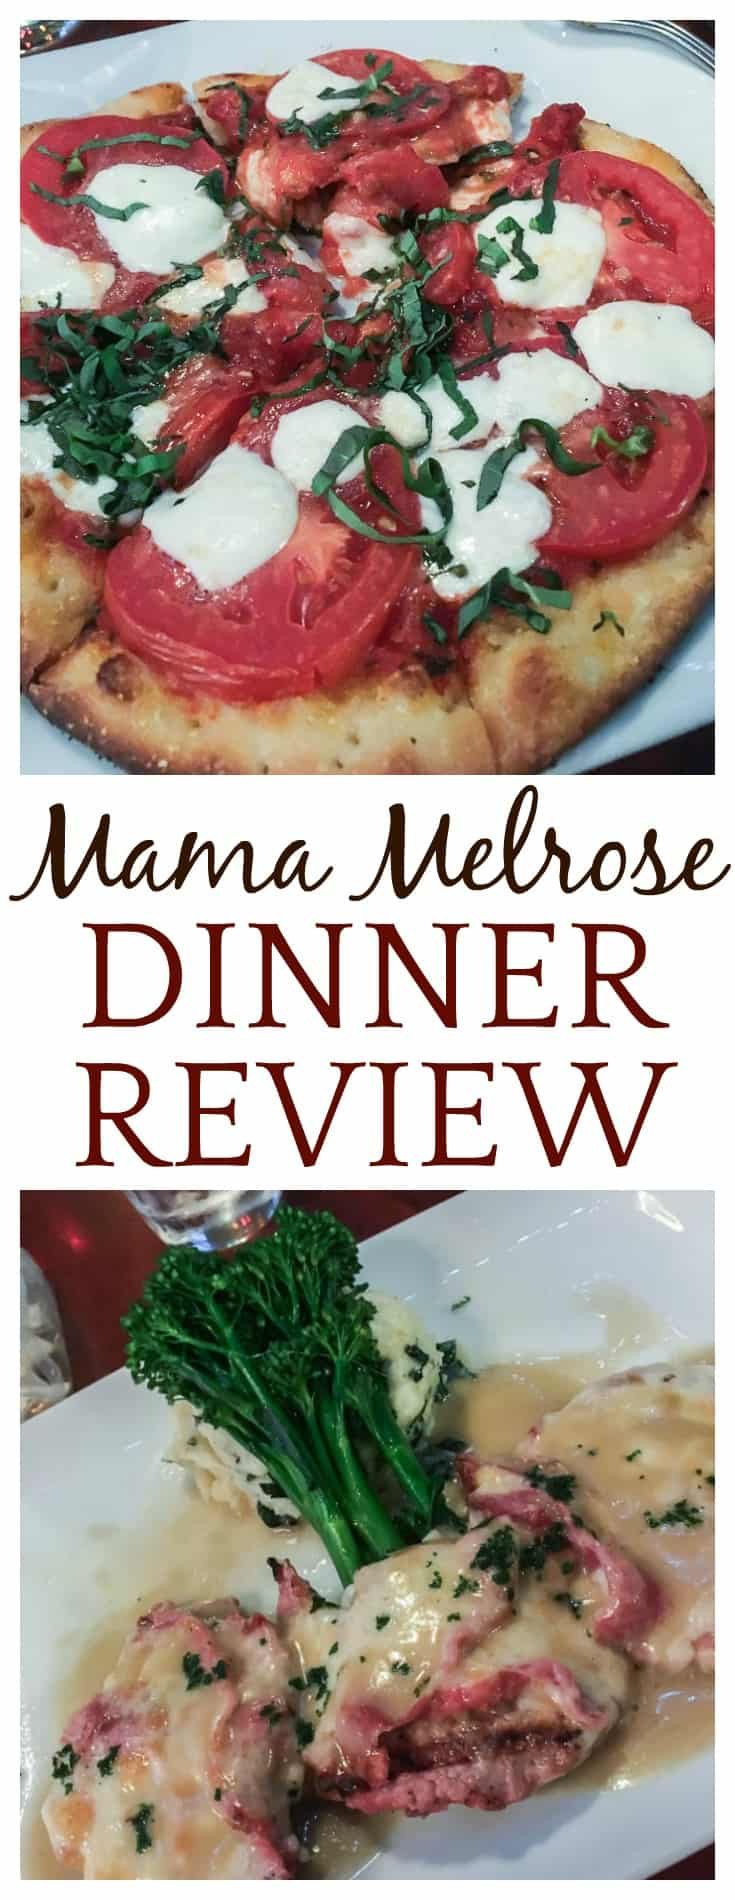 This Mama Melrose dinner review is based on my experience when visiting the restaurant in November 2017 with my family | #disneydining #disneyworld #disneyrestaurants #restaurants #review #mamamelrose